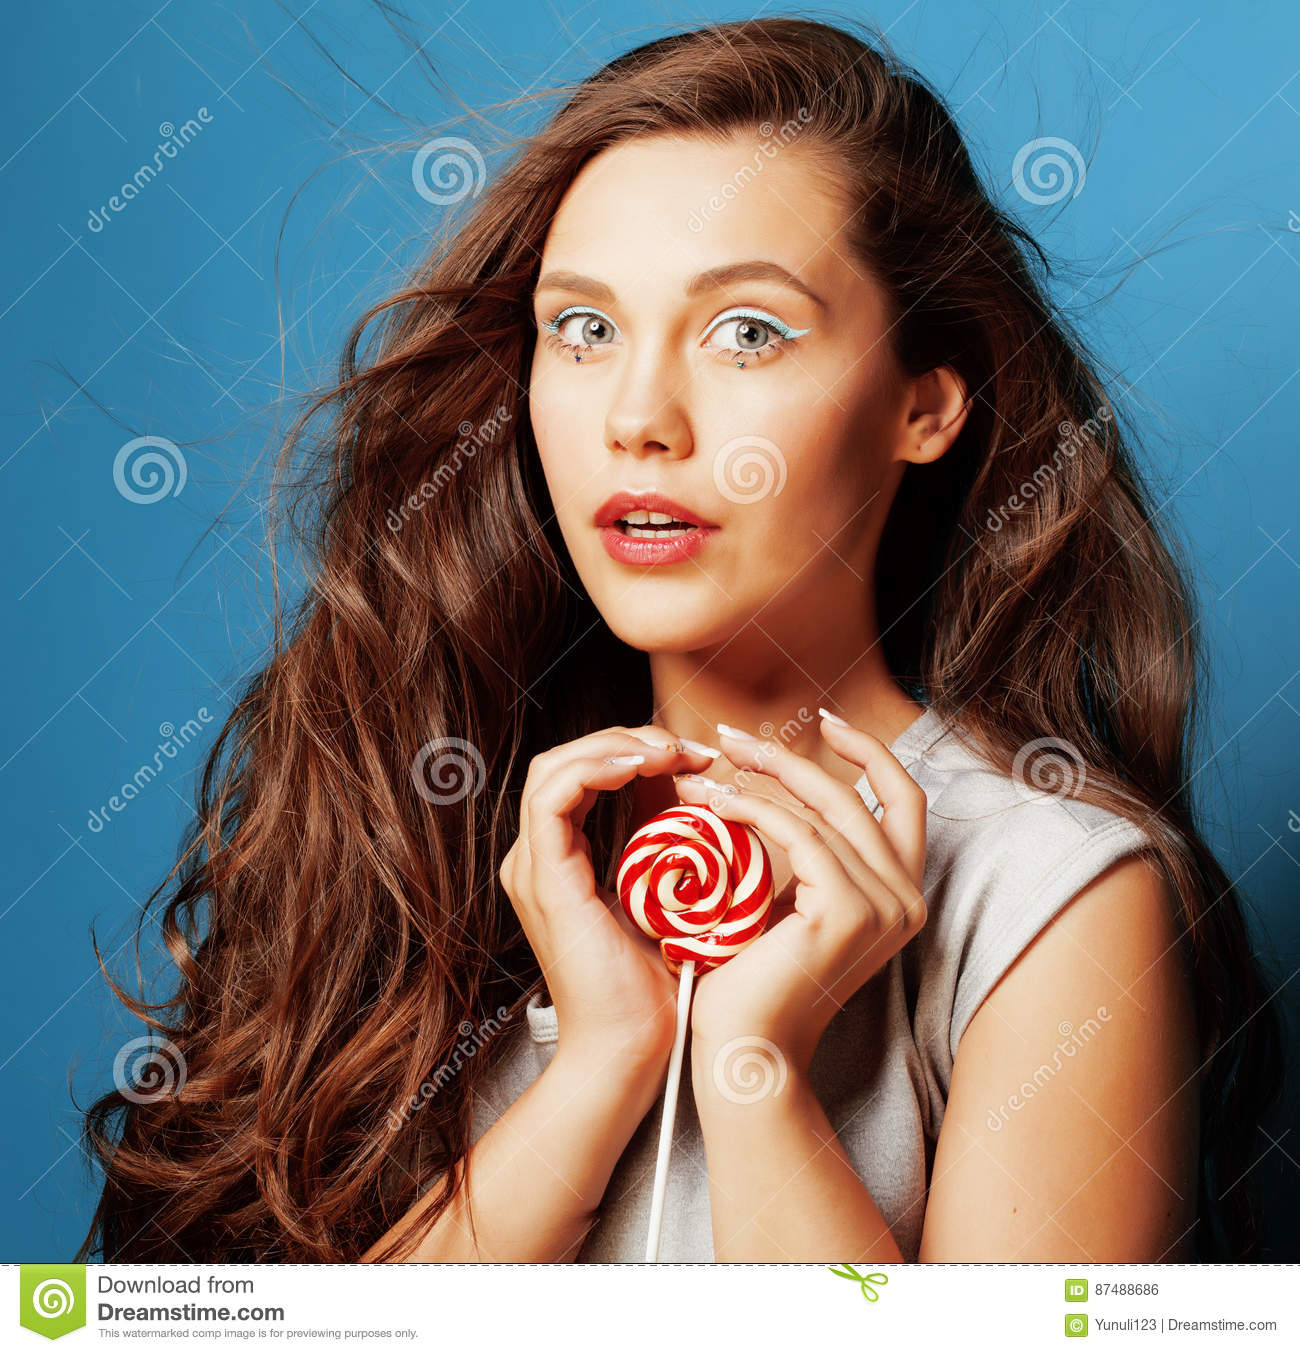 Candy doll stock photos royalty free stock images young pretty adorable woman with candy close up like doll makeup royalty free stock image voltagebd